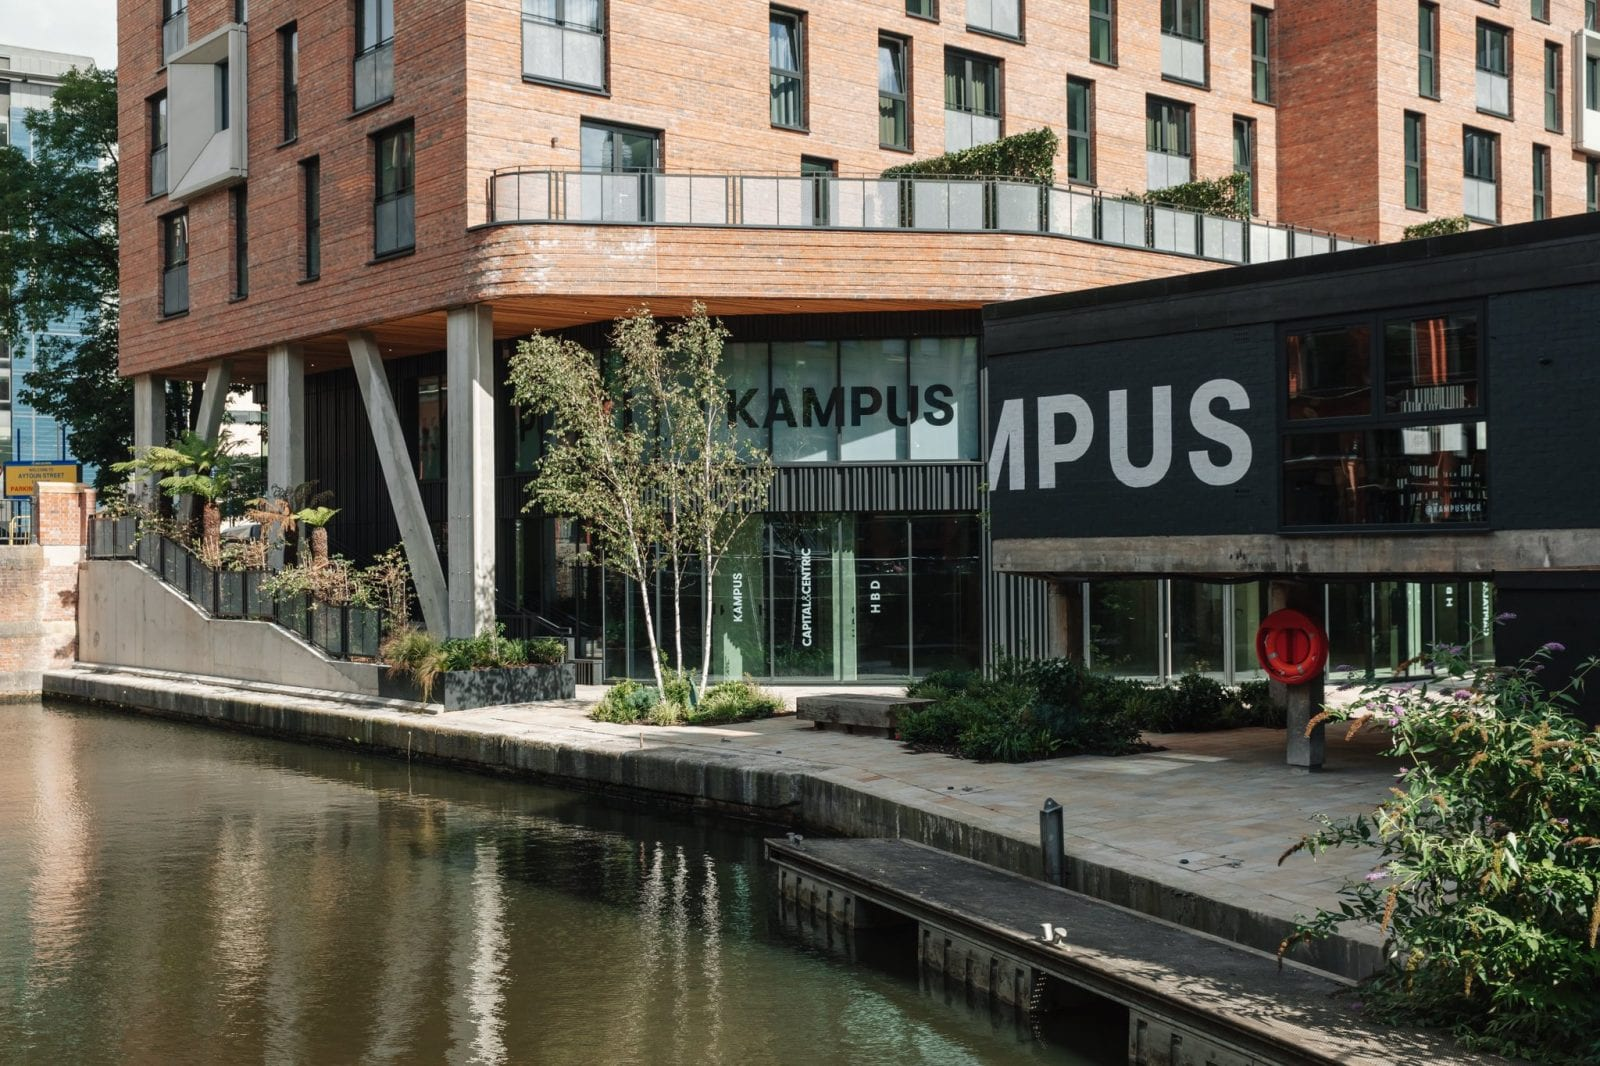 There's a Bread Flower pop-up coming to Manchester's canalside neighbourhood KAMPUS, The Manc